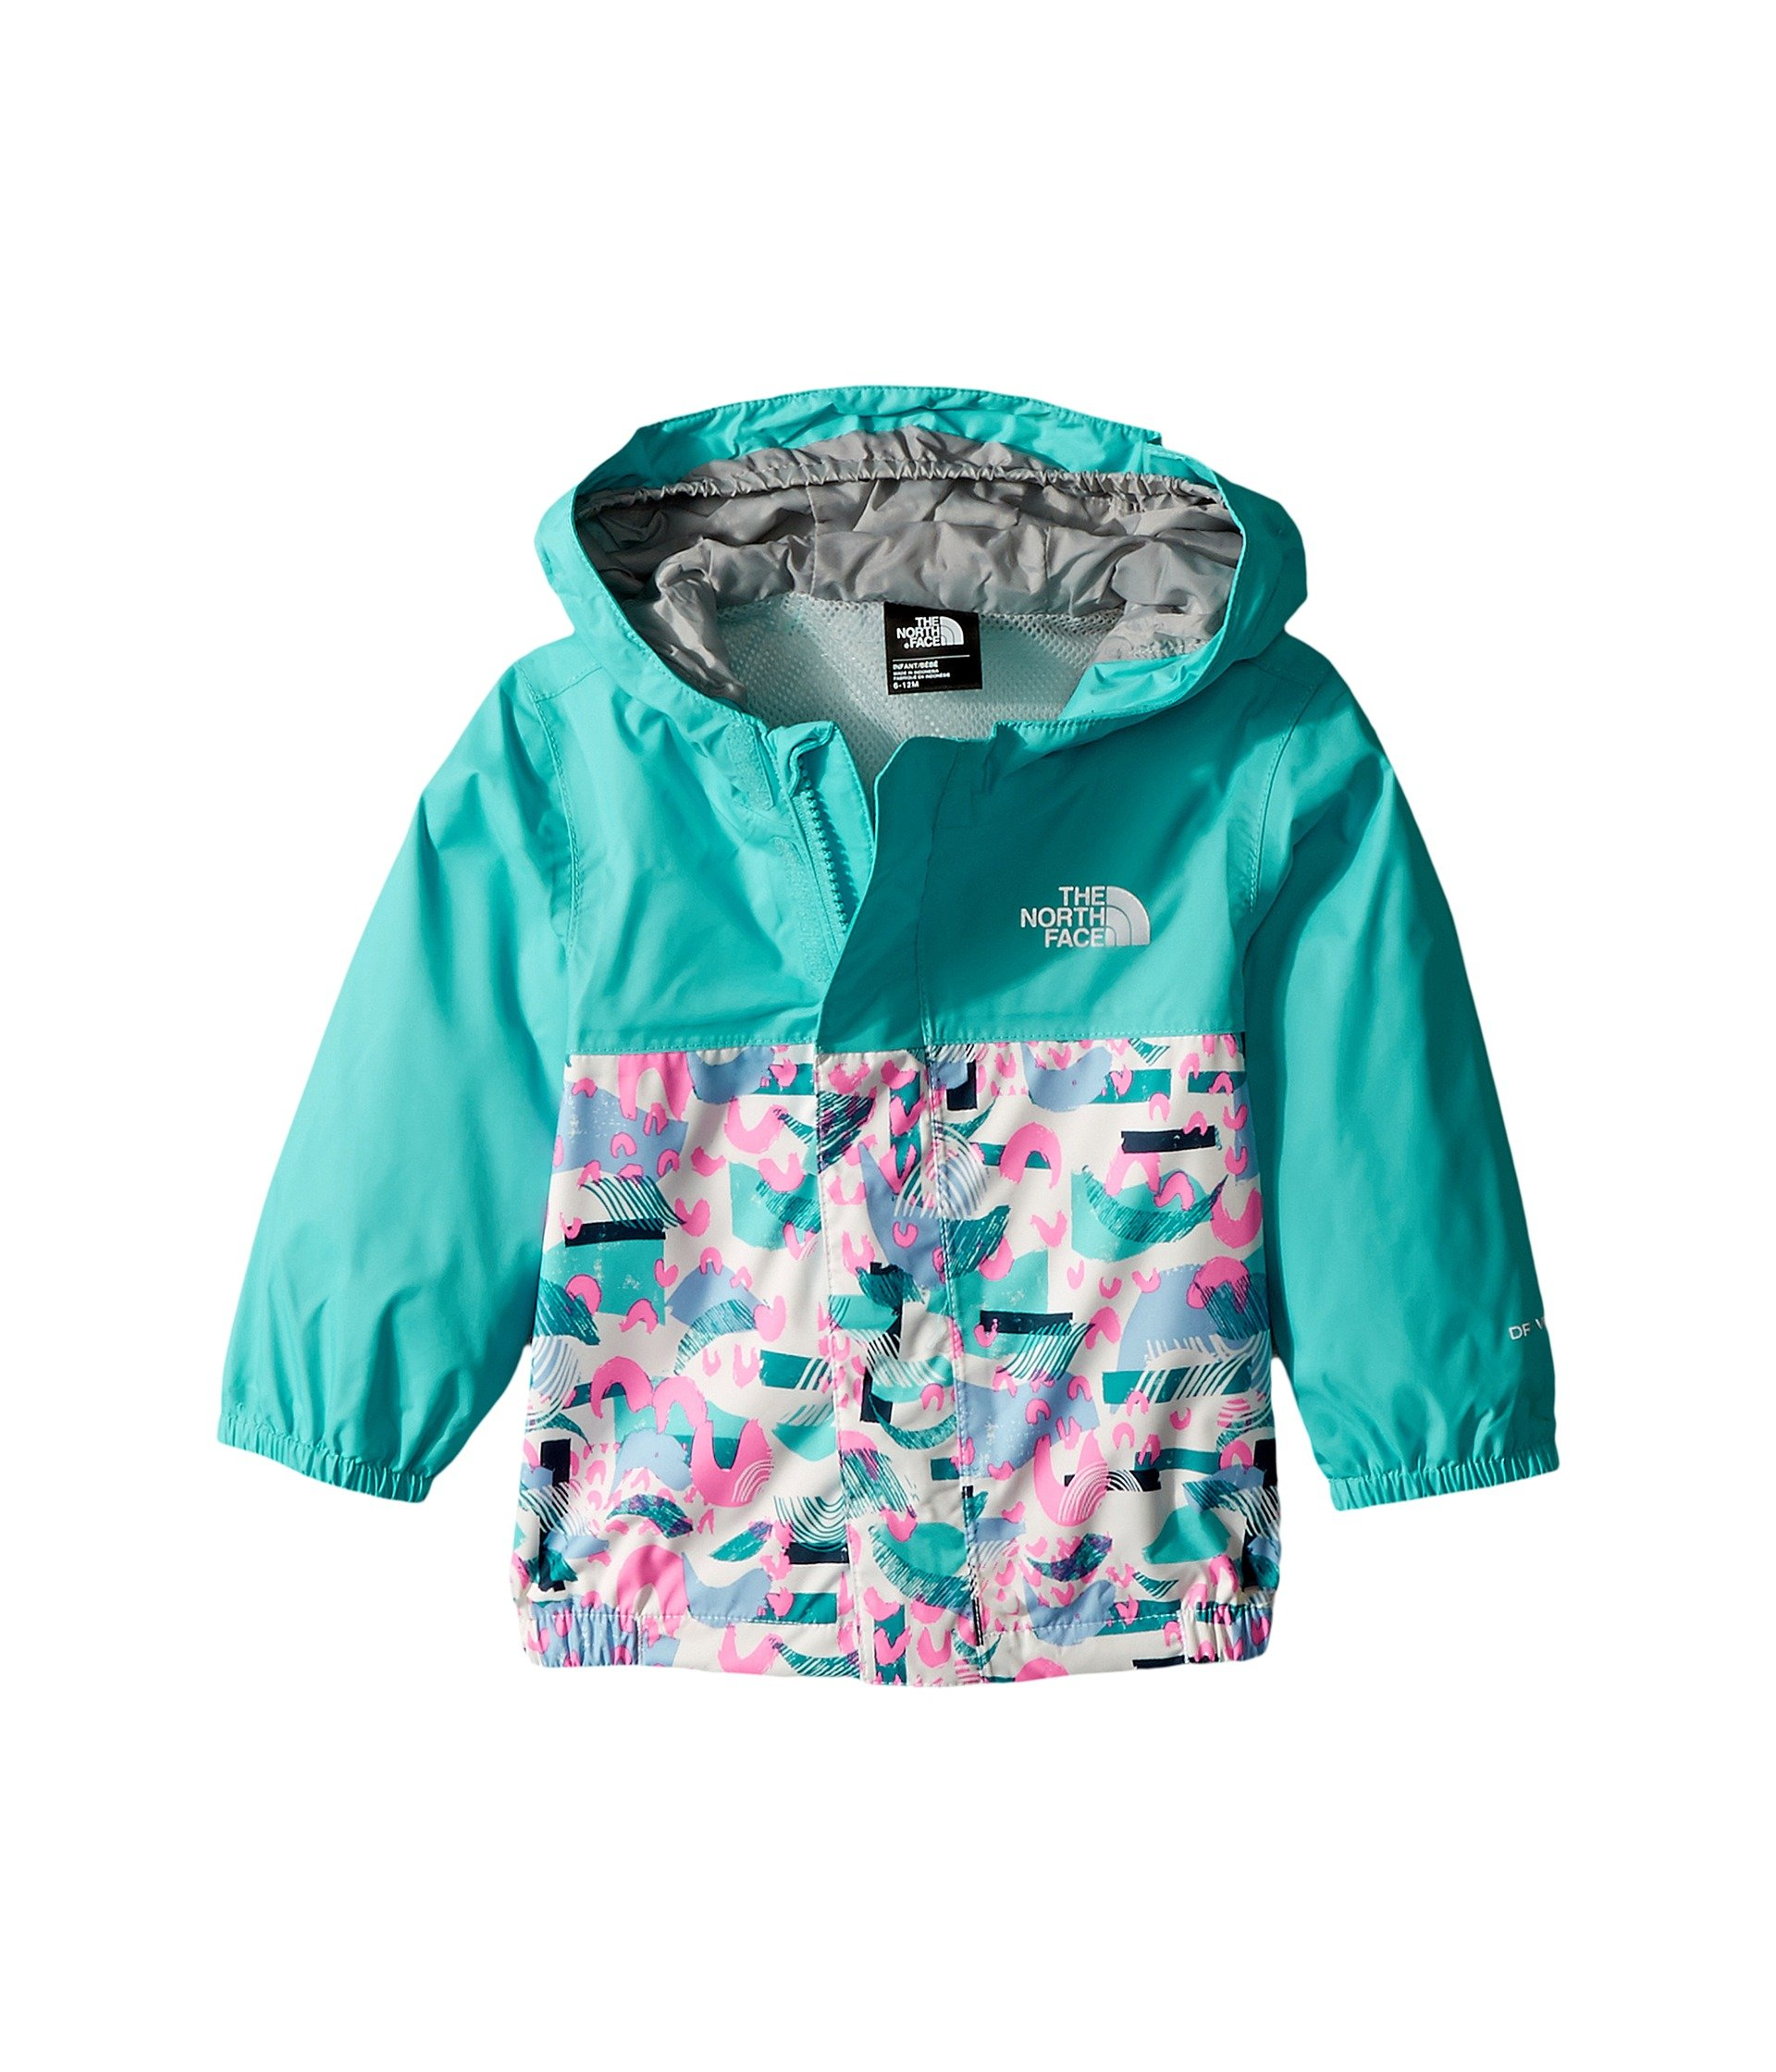 The North Face Infant Tailout Rain Jacket Blue Curacao - 3M by The North Face